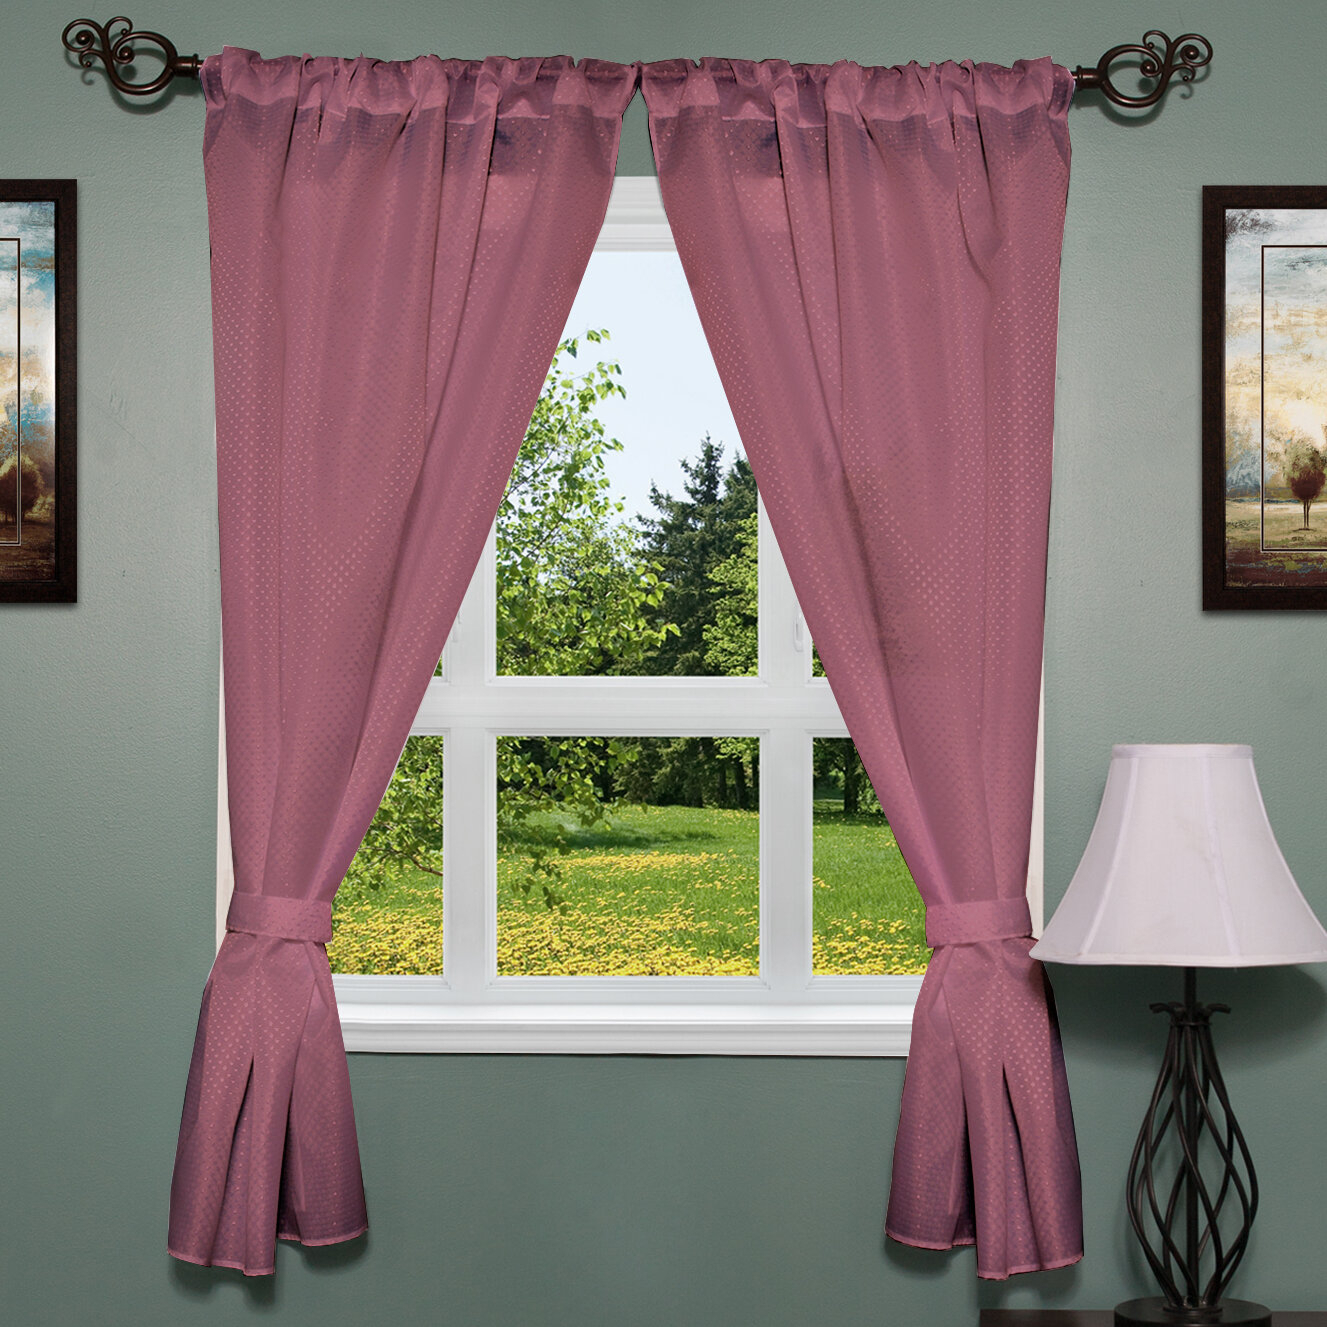 Dallastown Elegant Subtle Fabric Curtain Panel With Regard To Classic Hotel Quality Water Resistant Fabric Curtains Set With Tiebacks (View 6 of 20)